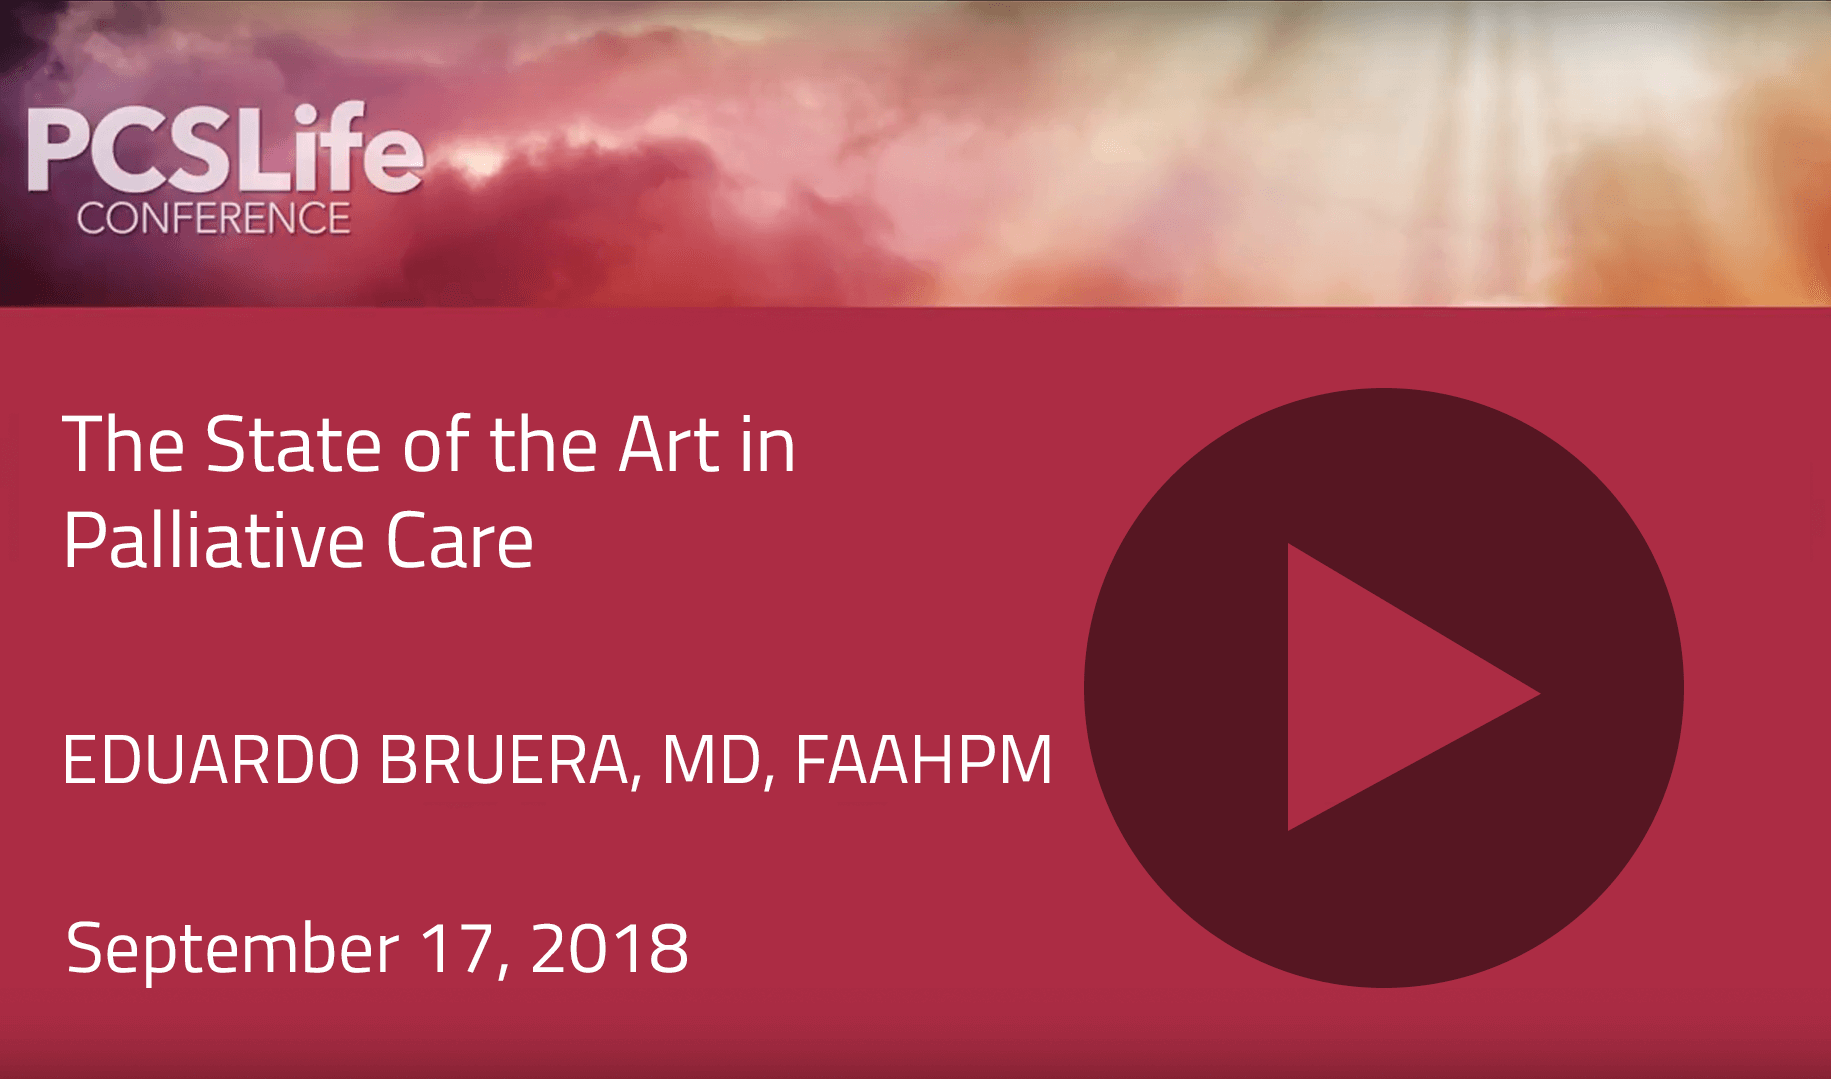 The State of the Art in Palliative Care by Eduardo Bruera